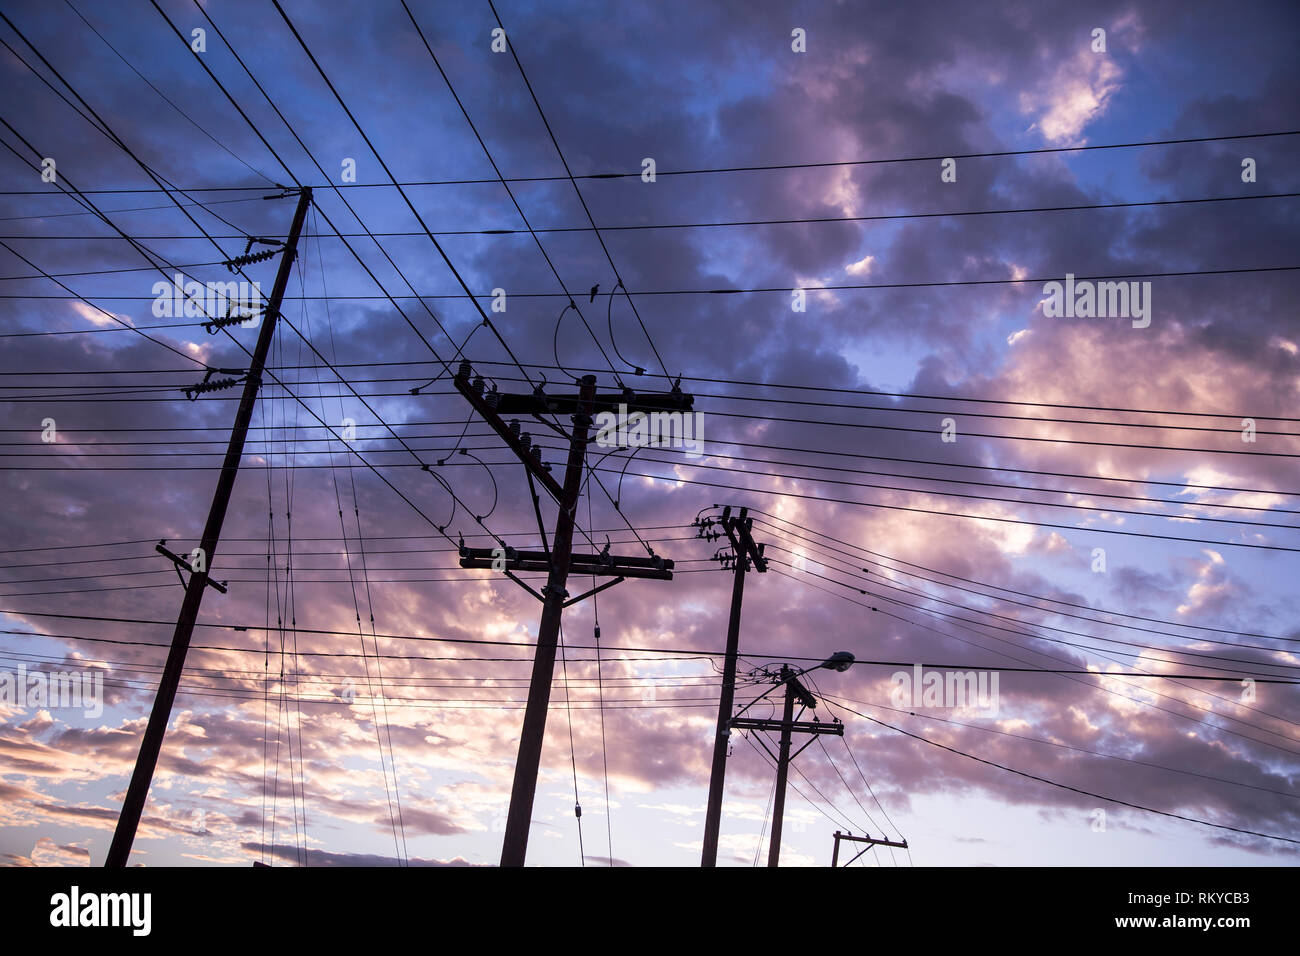 Looking up at powerlines and poles in the morning sky at sunrise in El Centro in California. - Stock Image